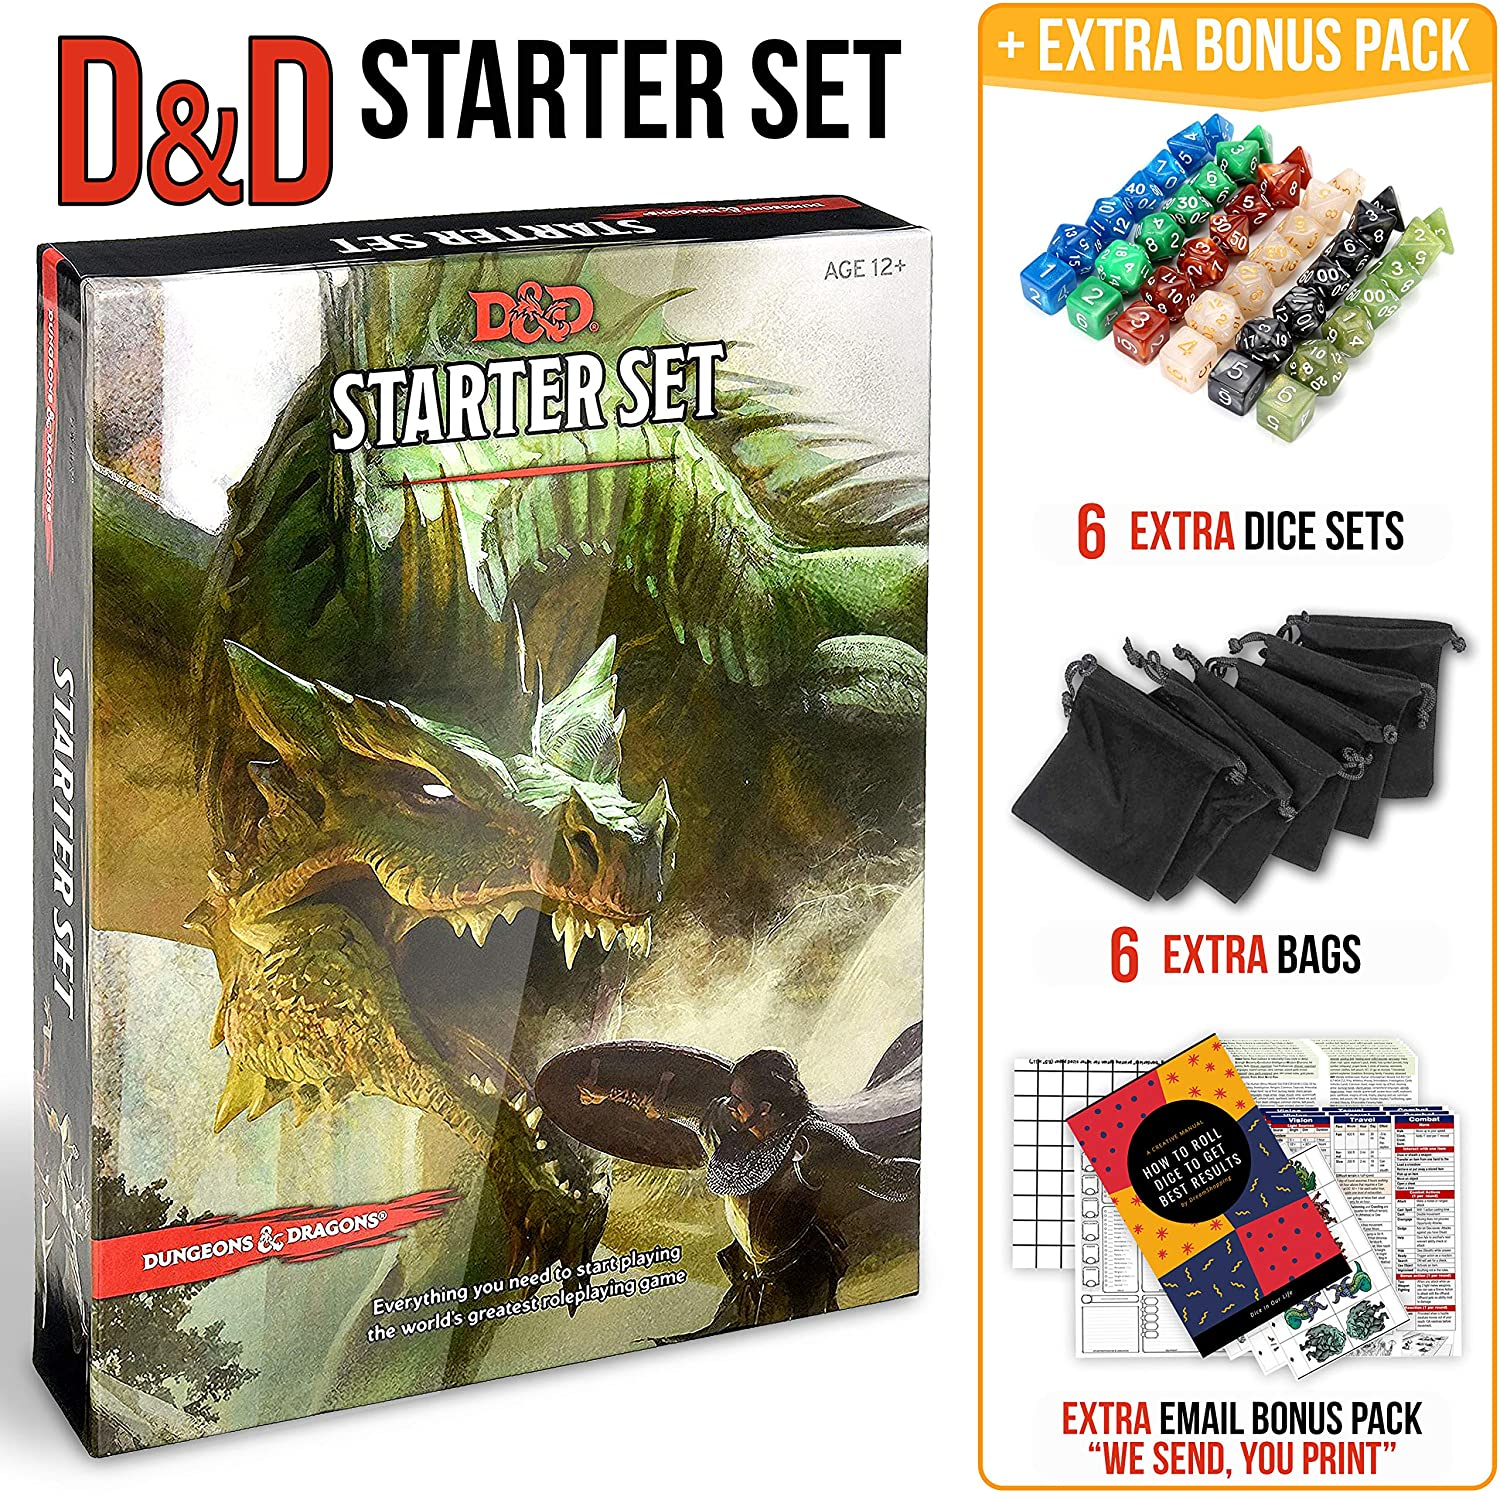 Dungeons Dragons Starter Set 5th Edition - DND Starter Kit - Dice in Black  Bag - Fun DND Rolling Board Games Adults Adult Magic Board Game 5e Beginner